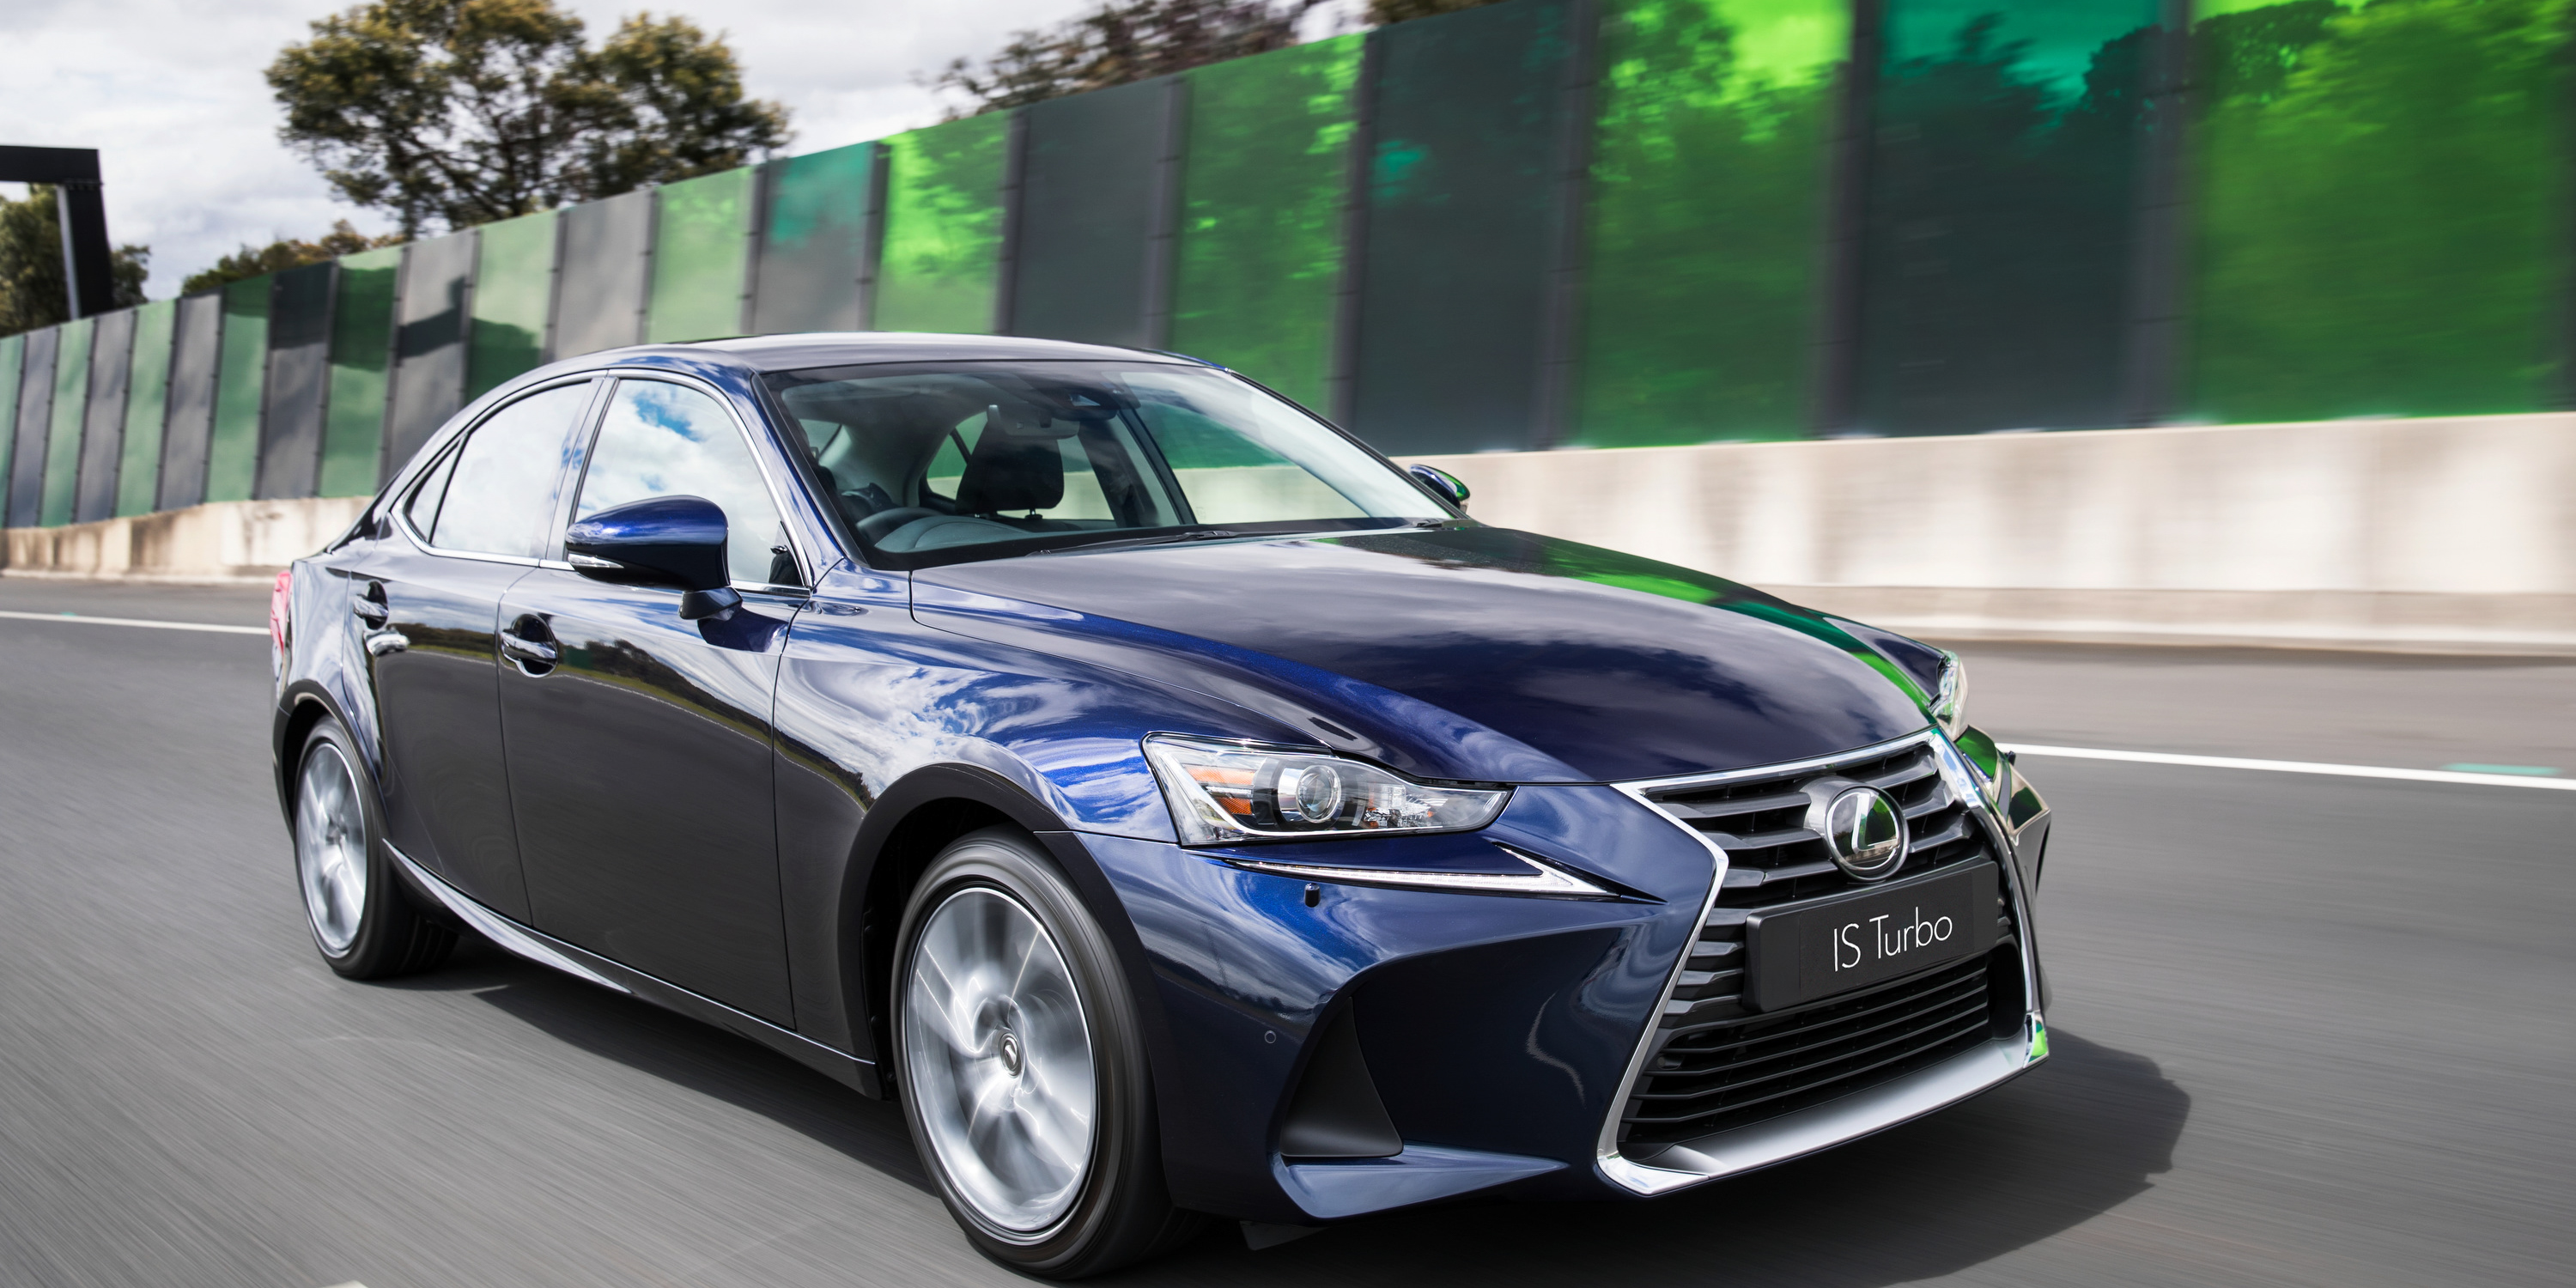 2017 Toyota Supra Skyline >> 2017 Lexus IS Model Range pricing and specs: New looks and more kit for mid-sized sedan - photos ...